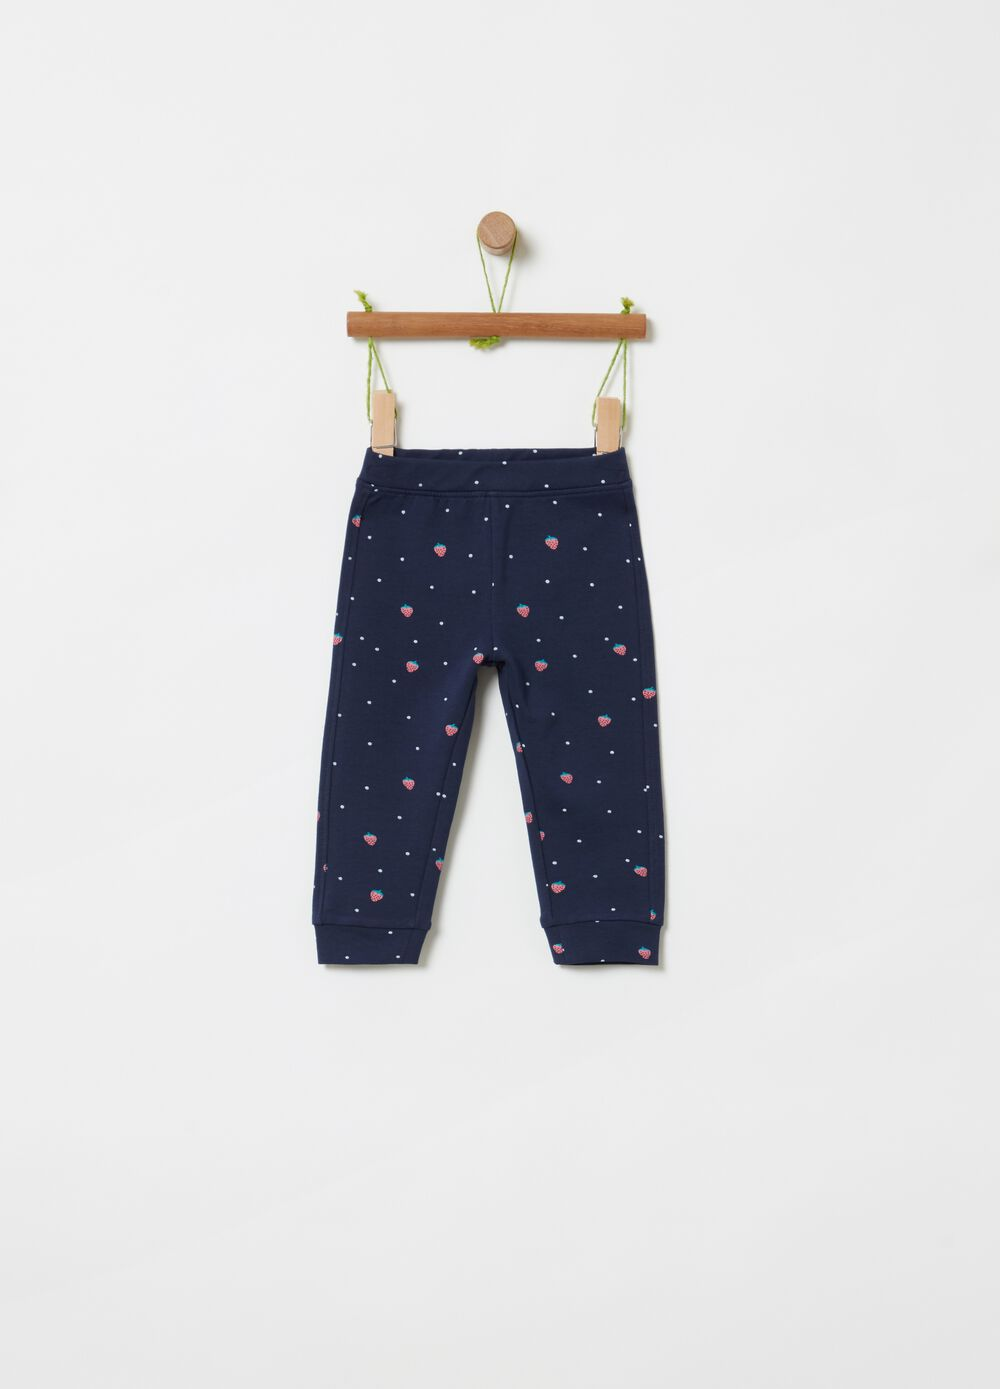 French terry joggers with pattern